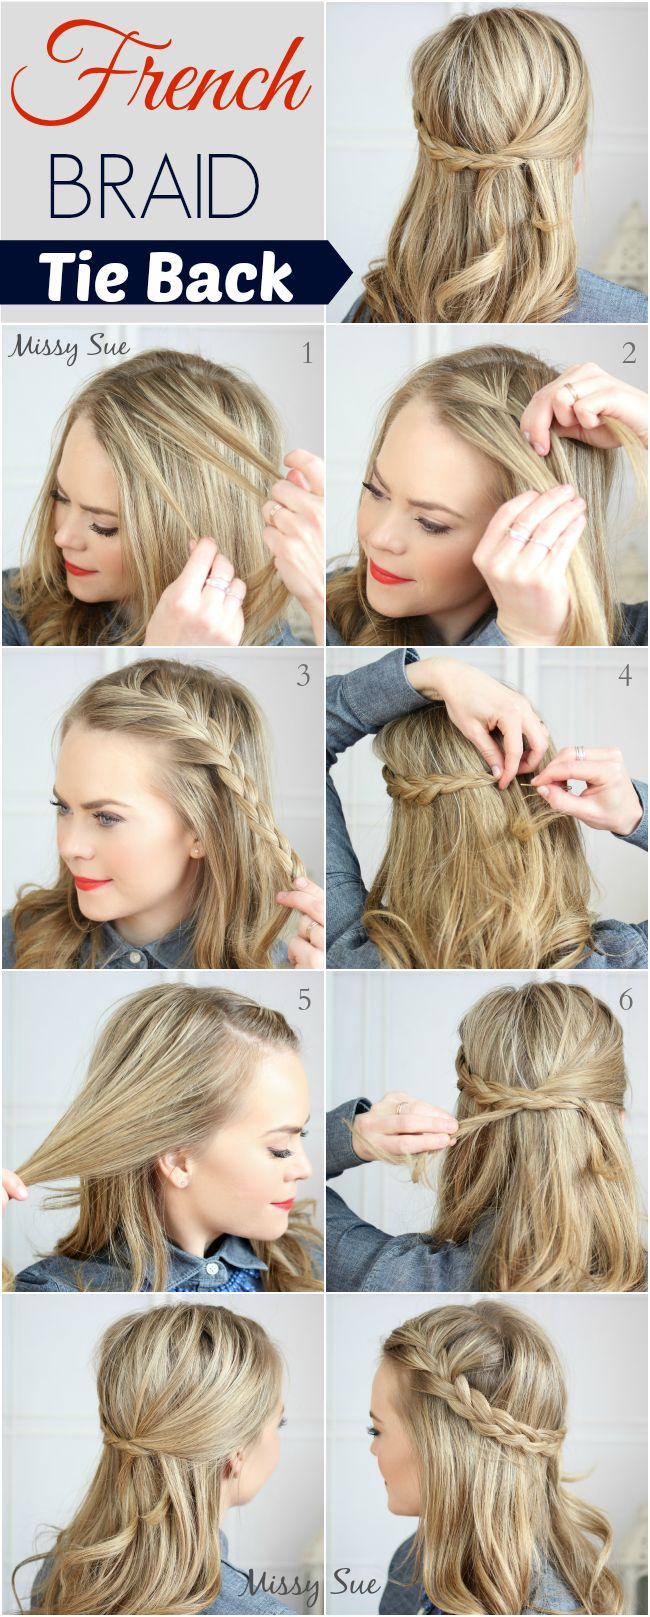 Braid 17-French Braid Tie Back